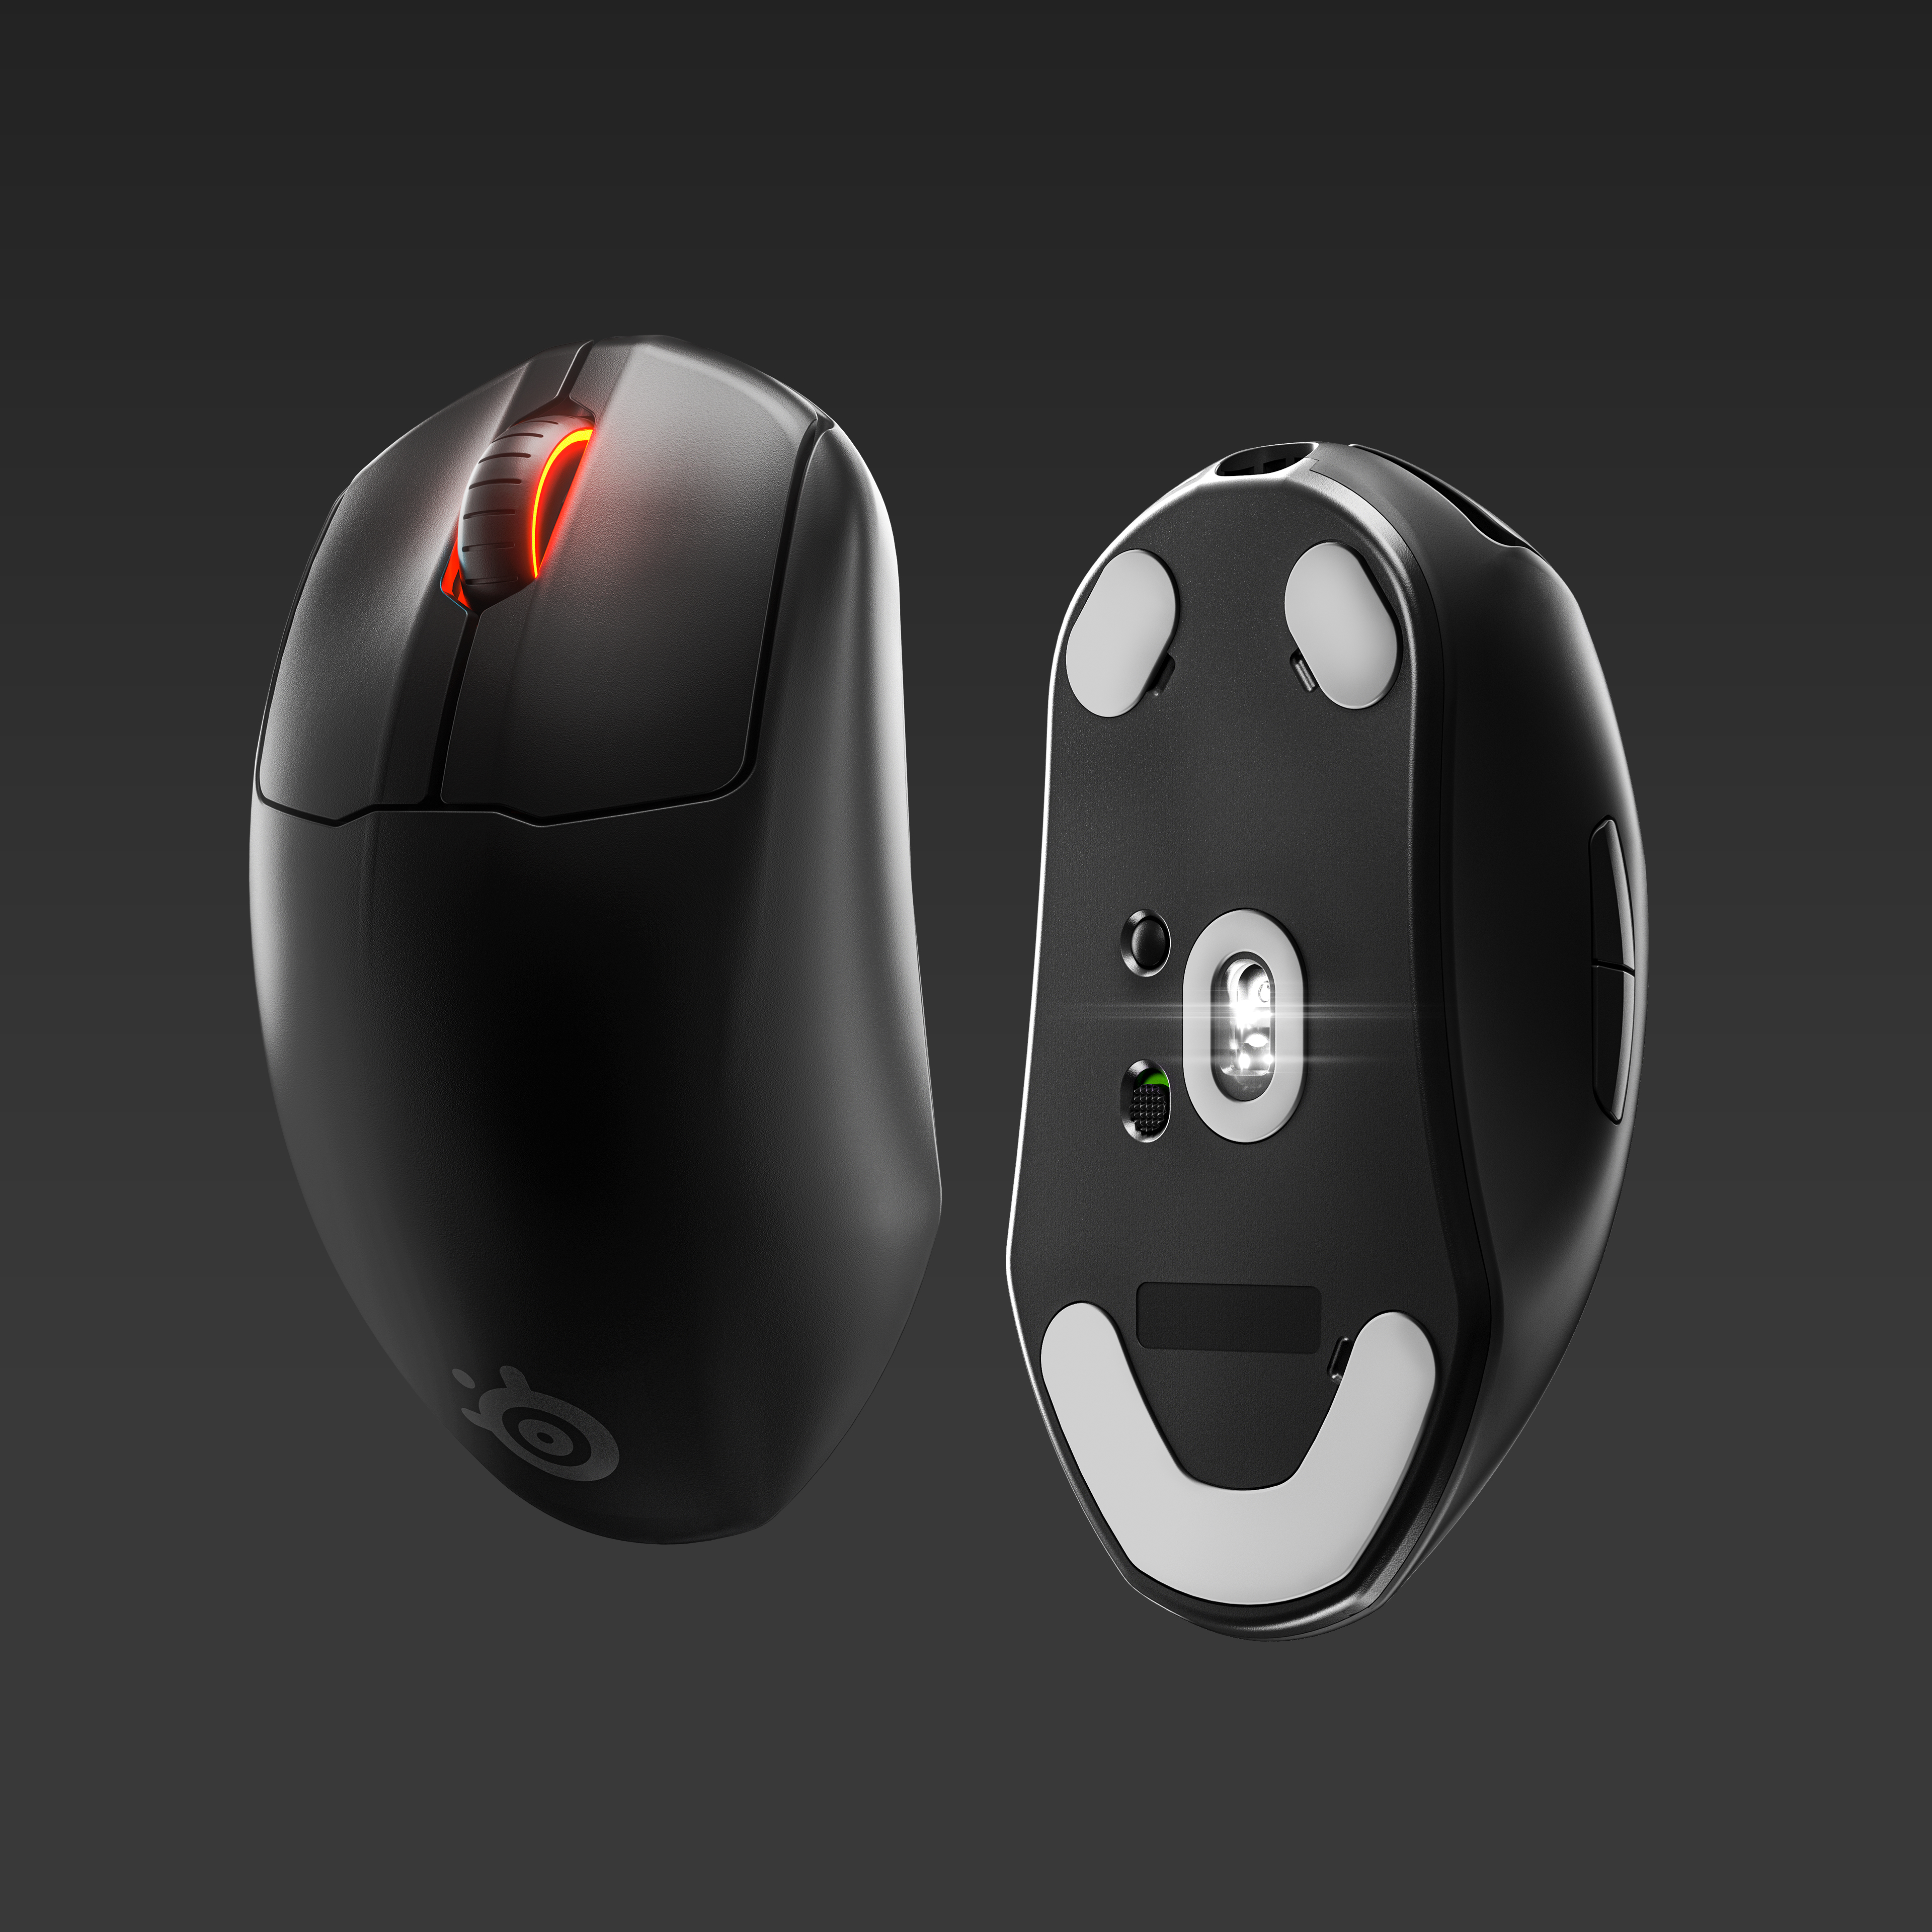 The Prime Wireless gaming mouse